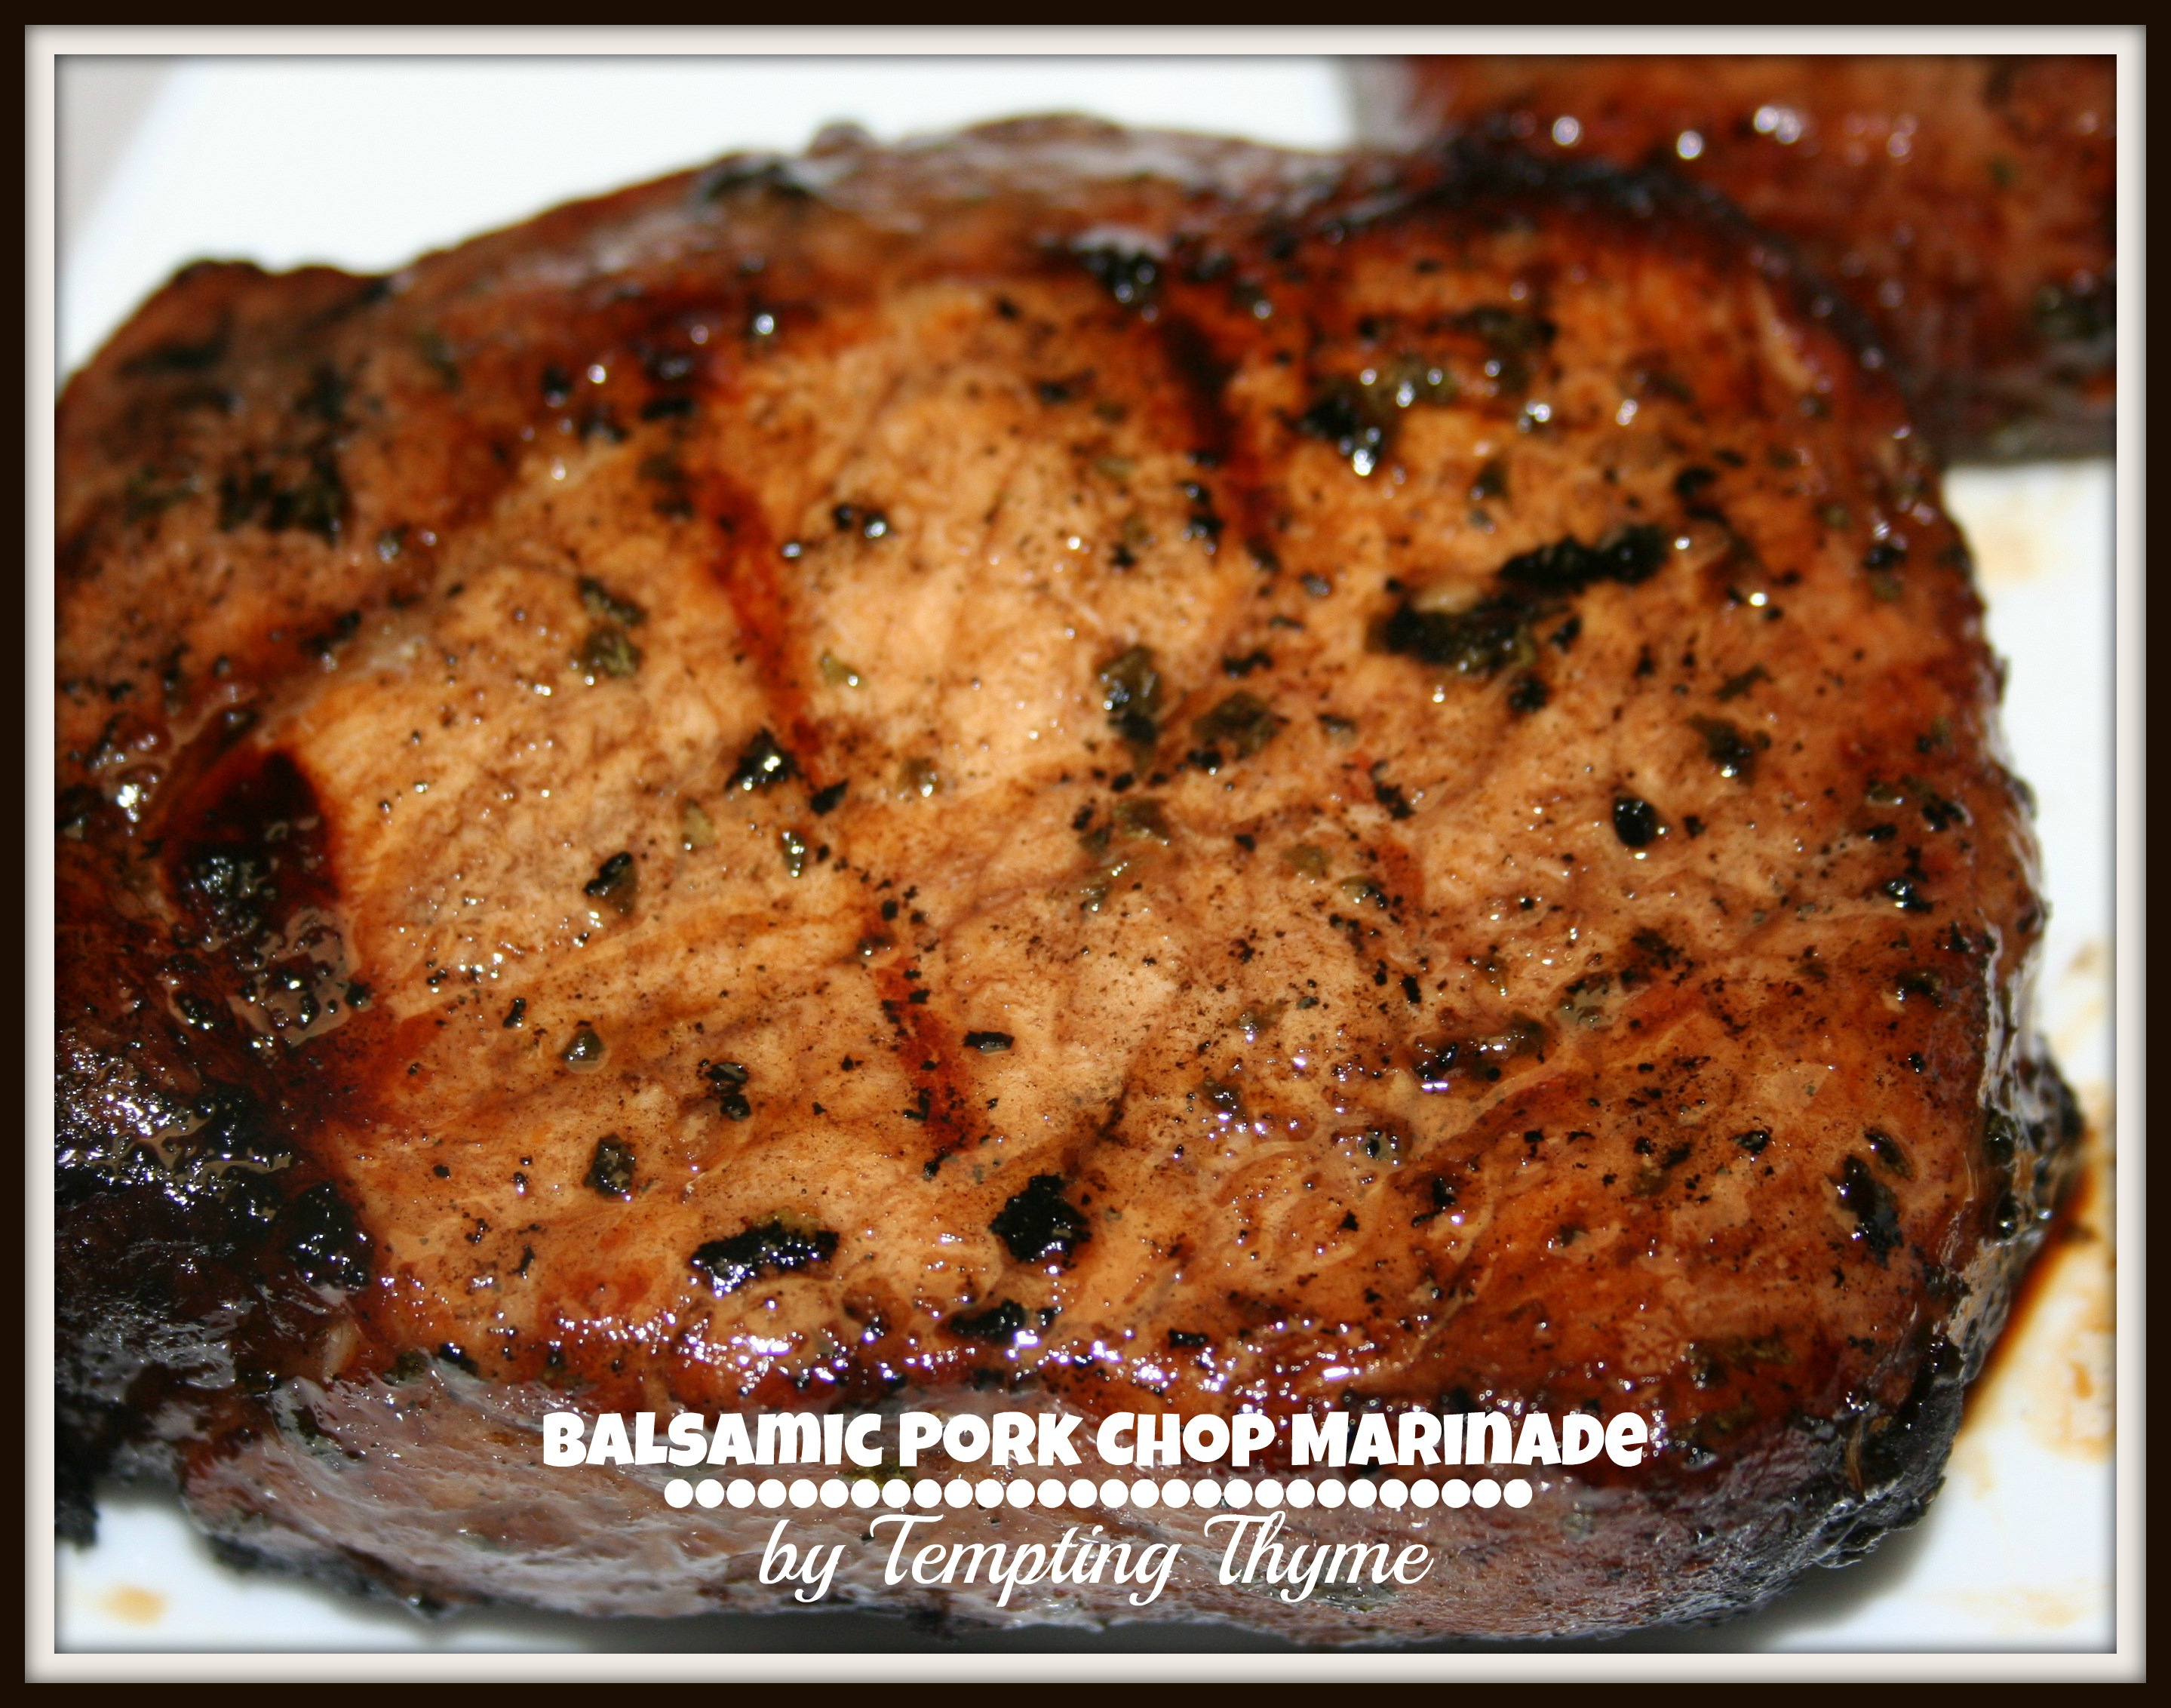 Balsamic Pork Marinade